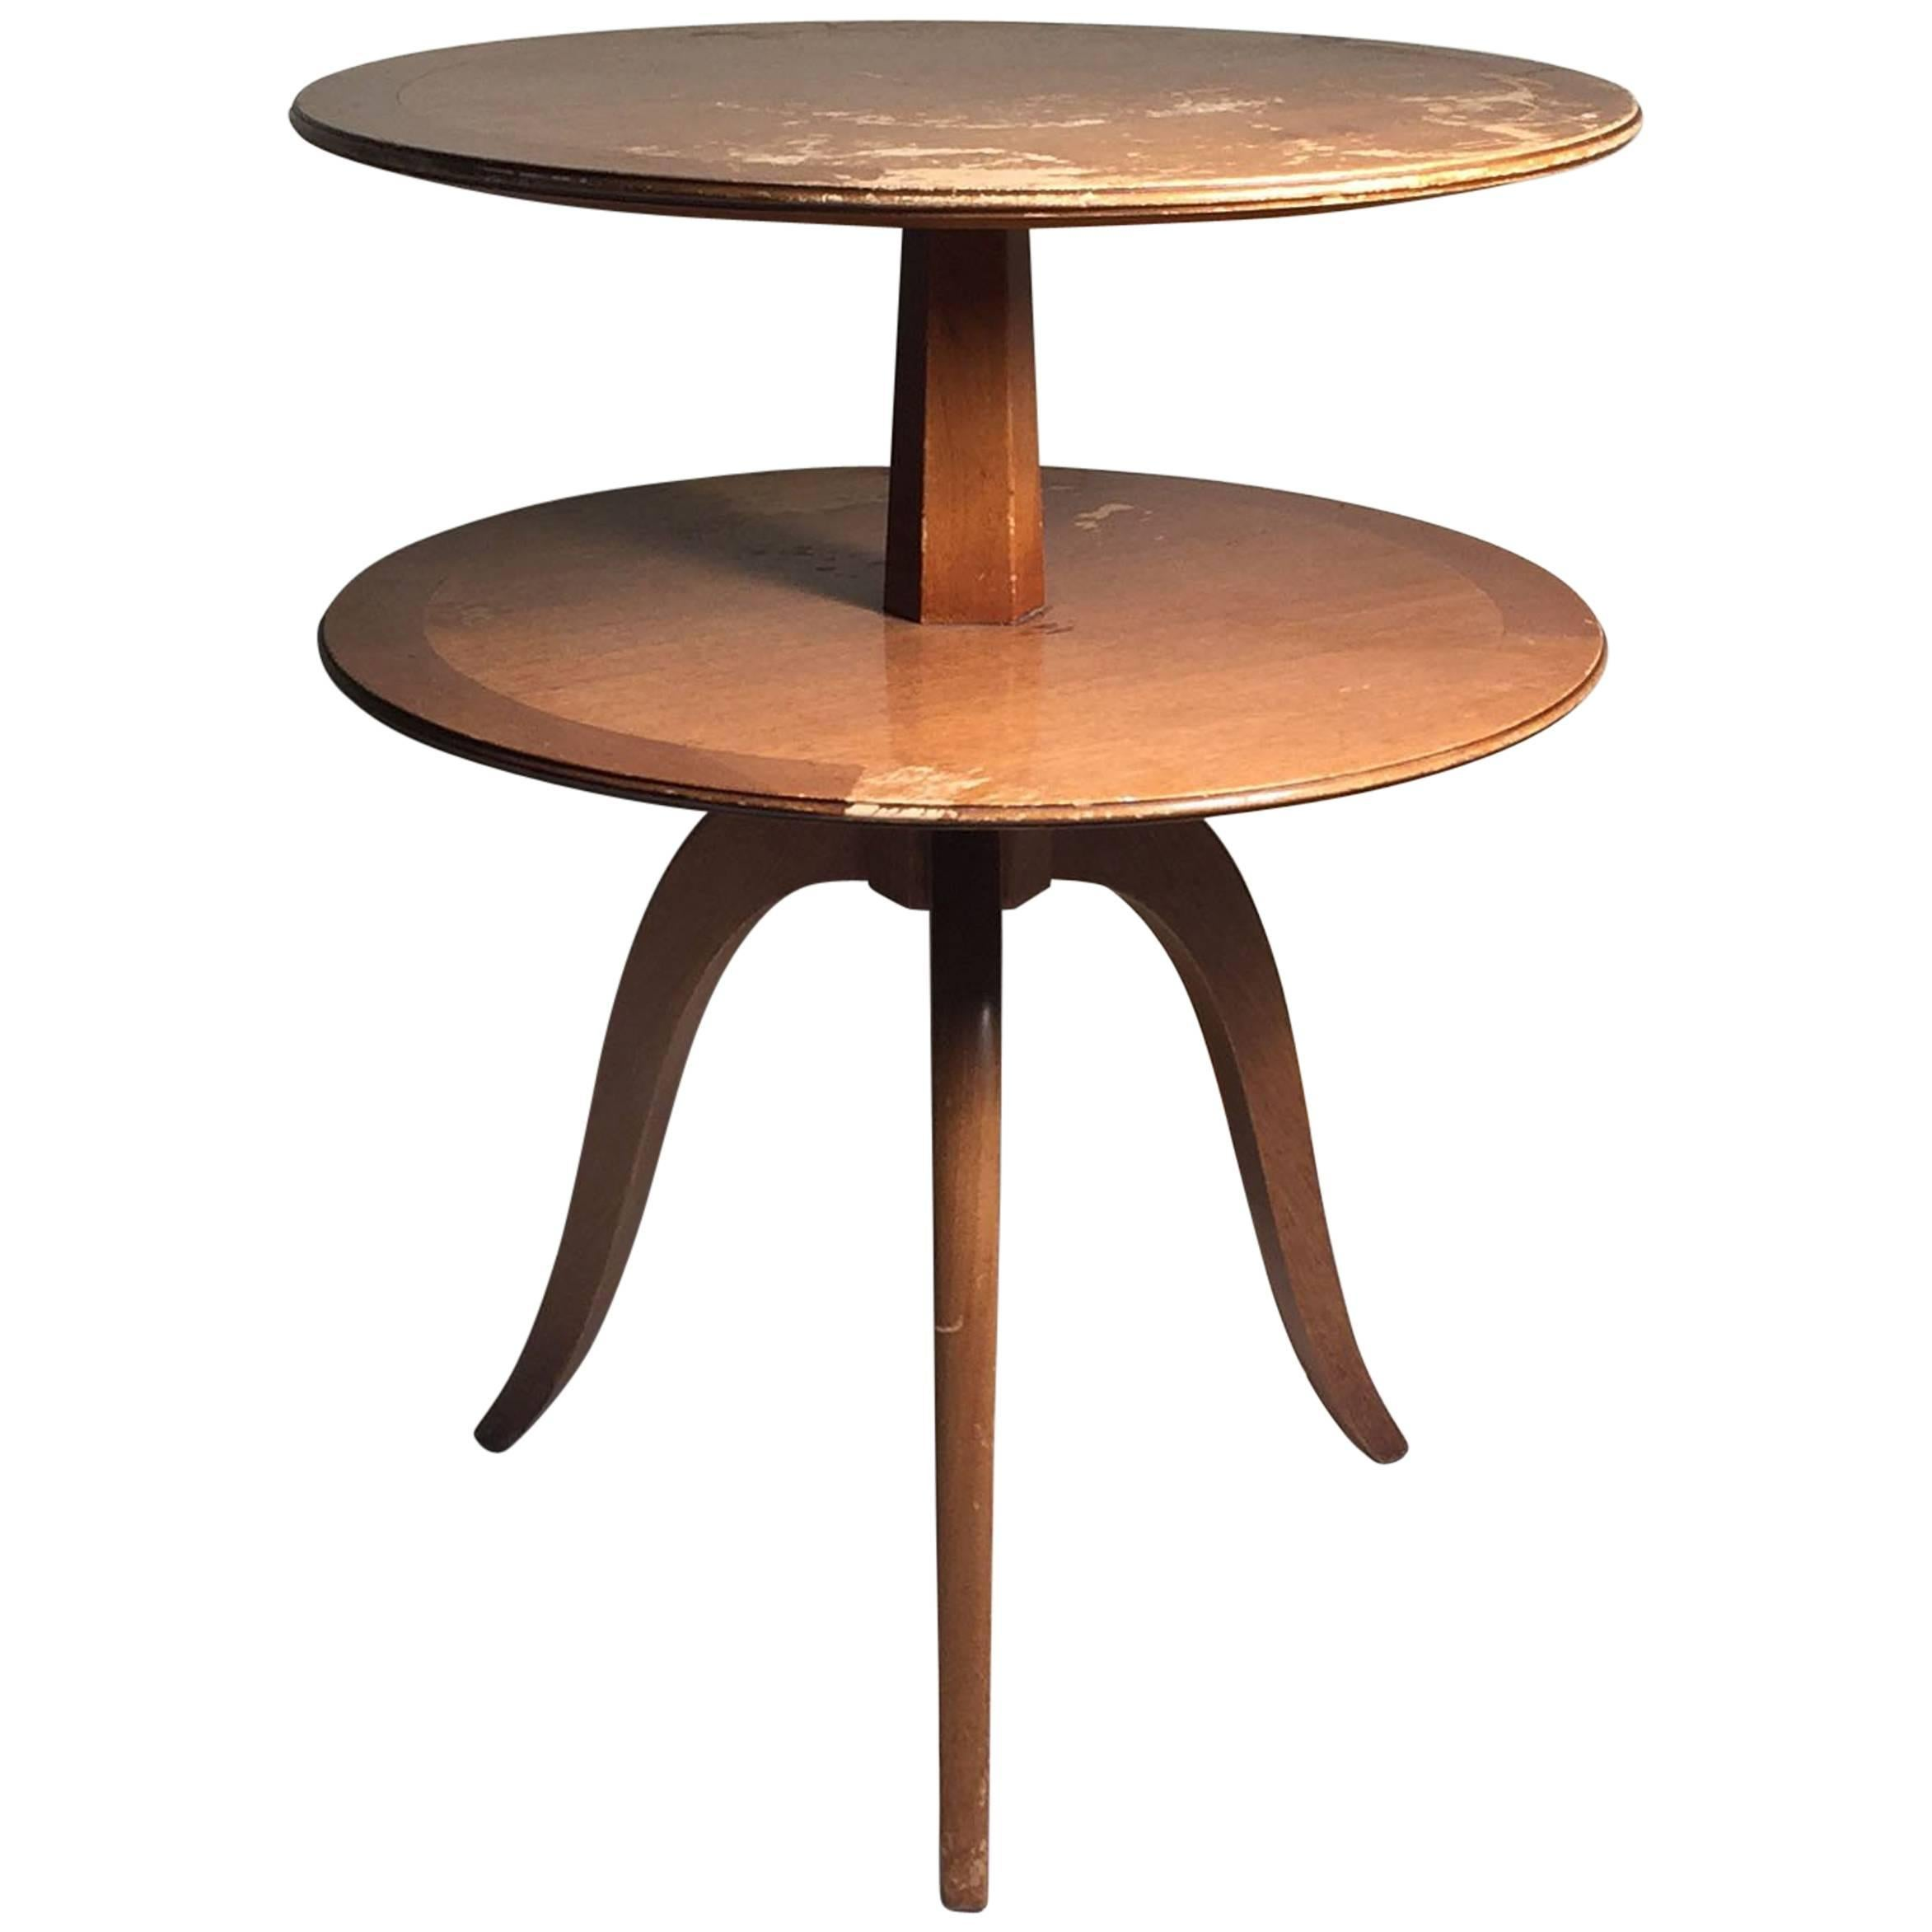 Edward Wormley Side Table for Dunbar